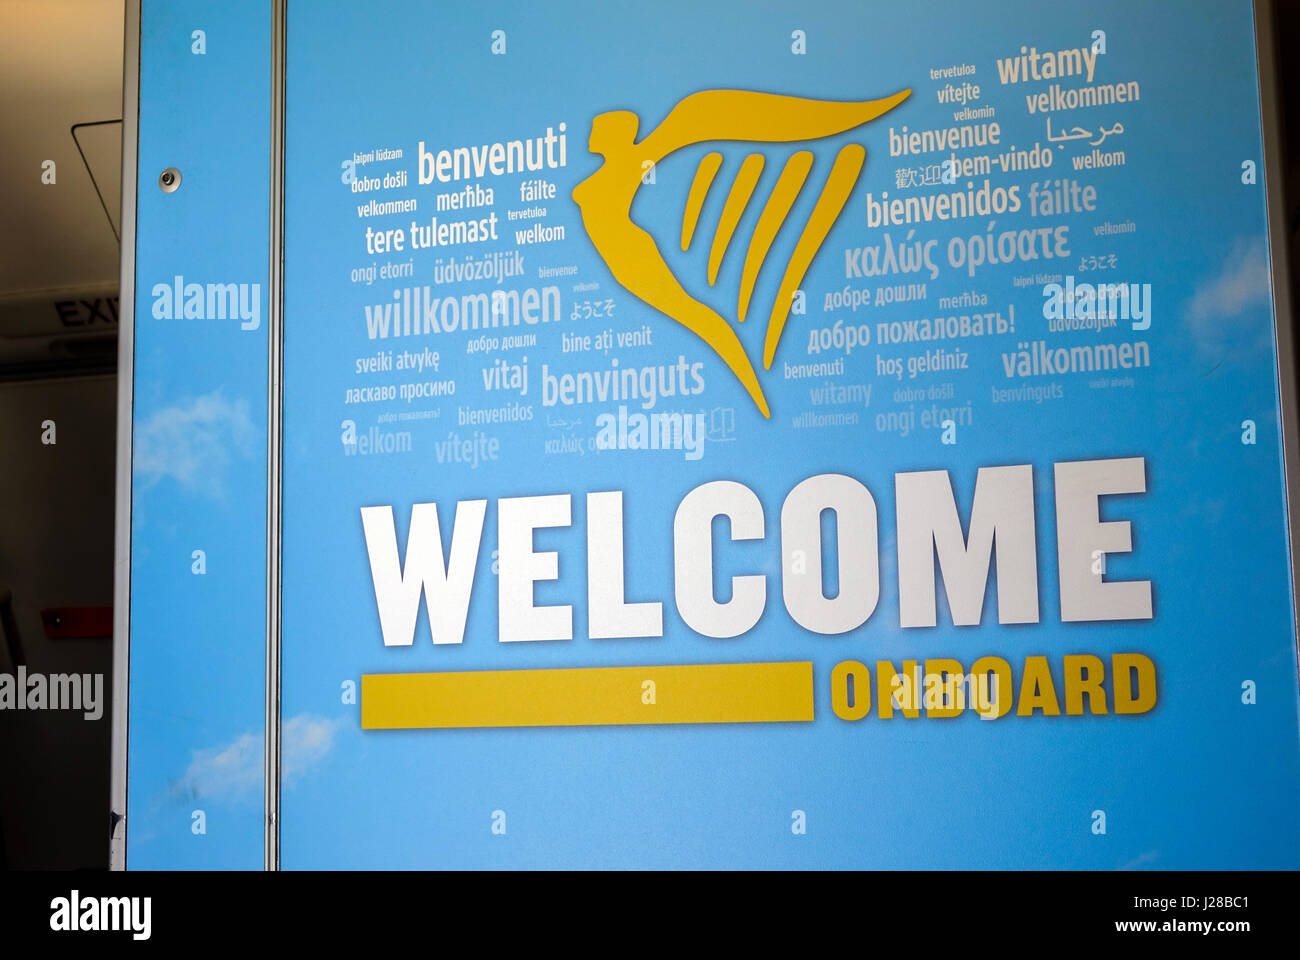 Welcome on board sign in many languages, Ryanair Beoing 737 - Stock Image